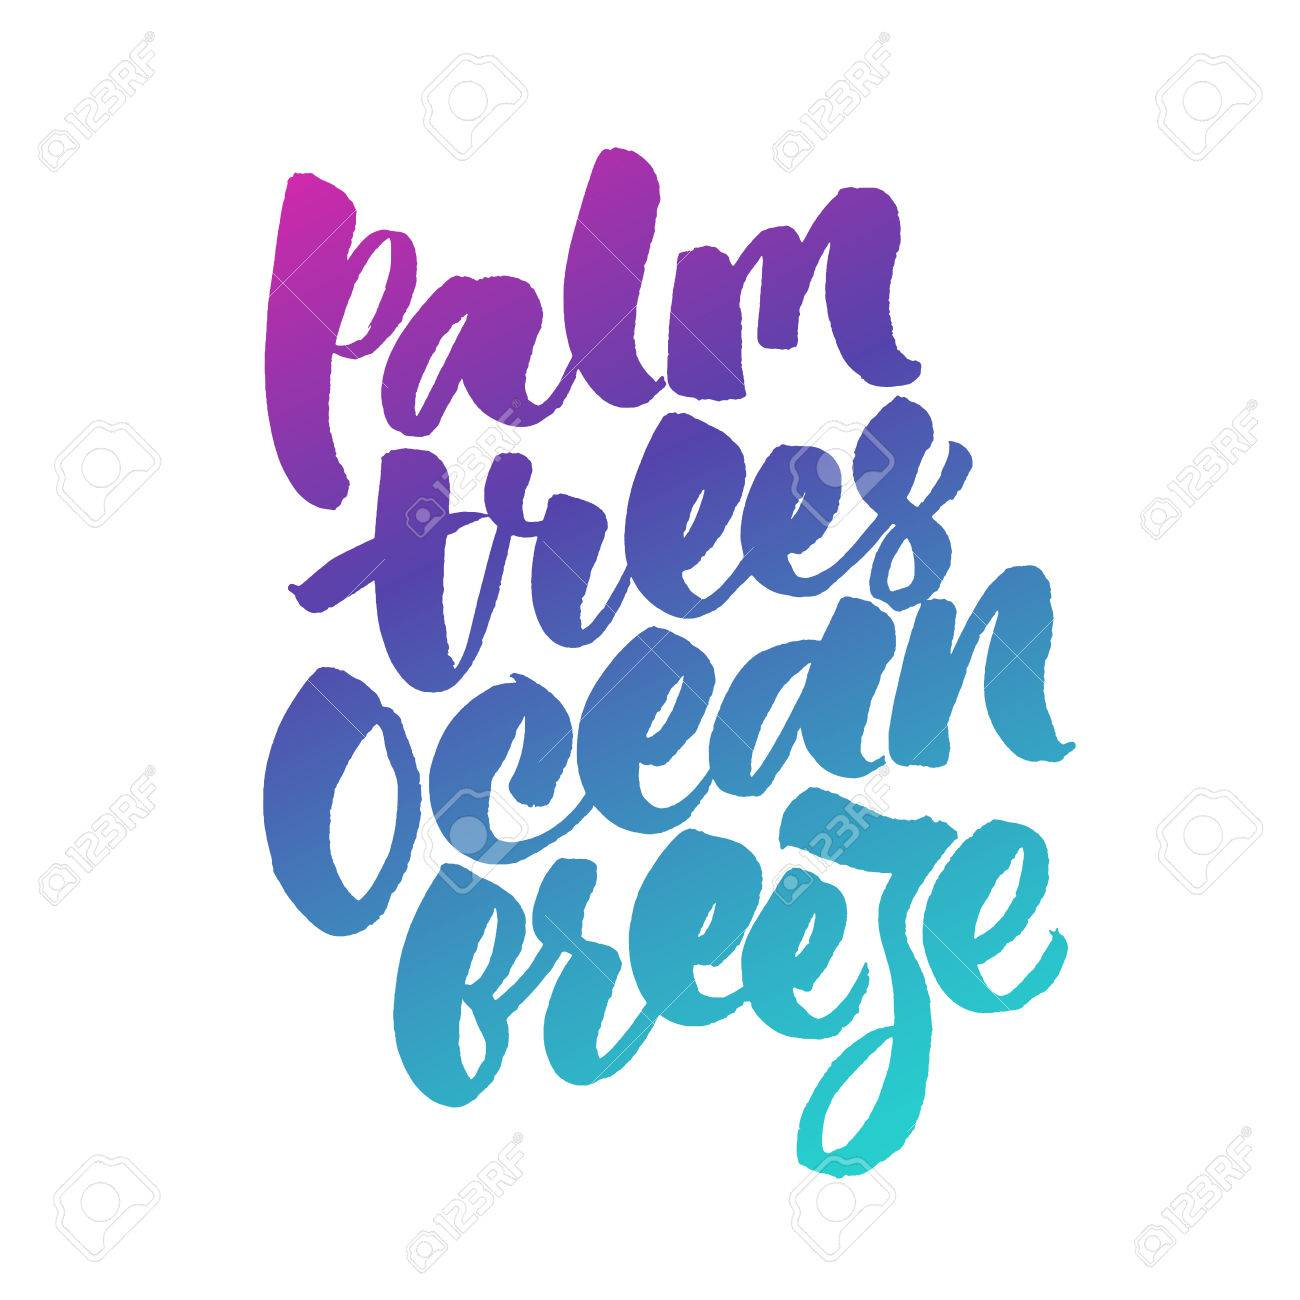 Palm Trees Ocean Breeze Inspirational Summer Quote Royalty Free